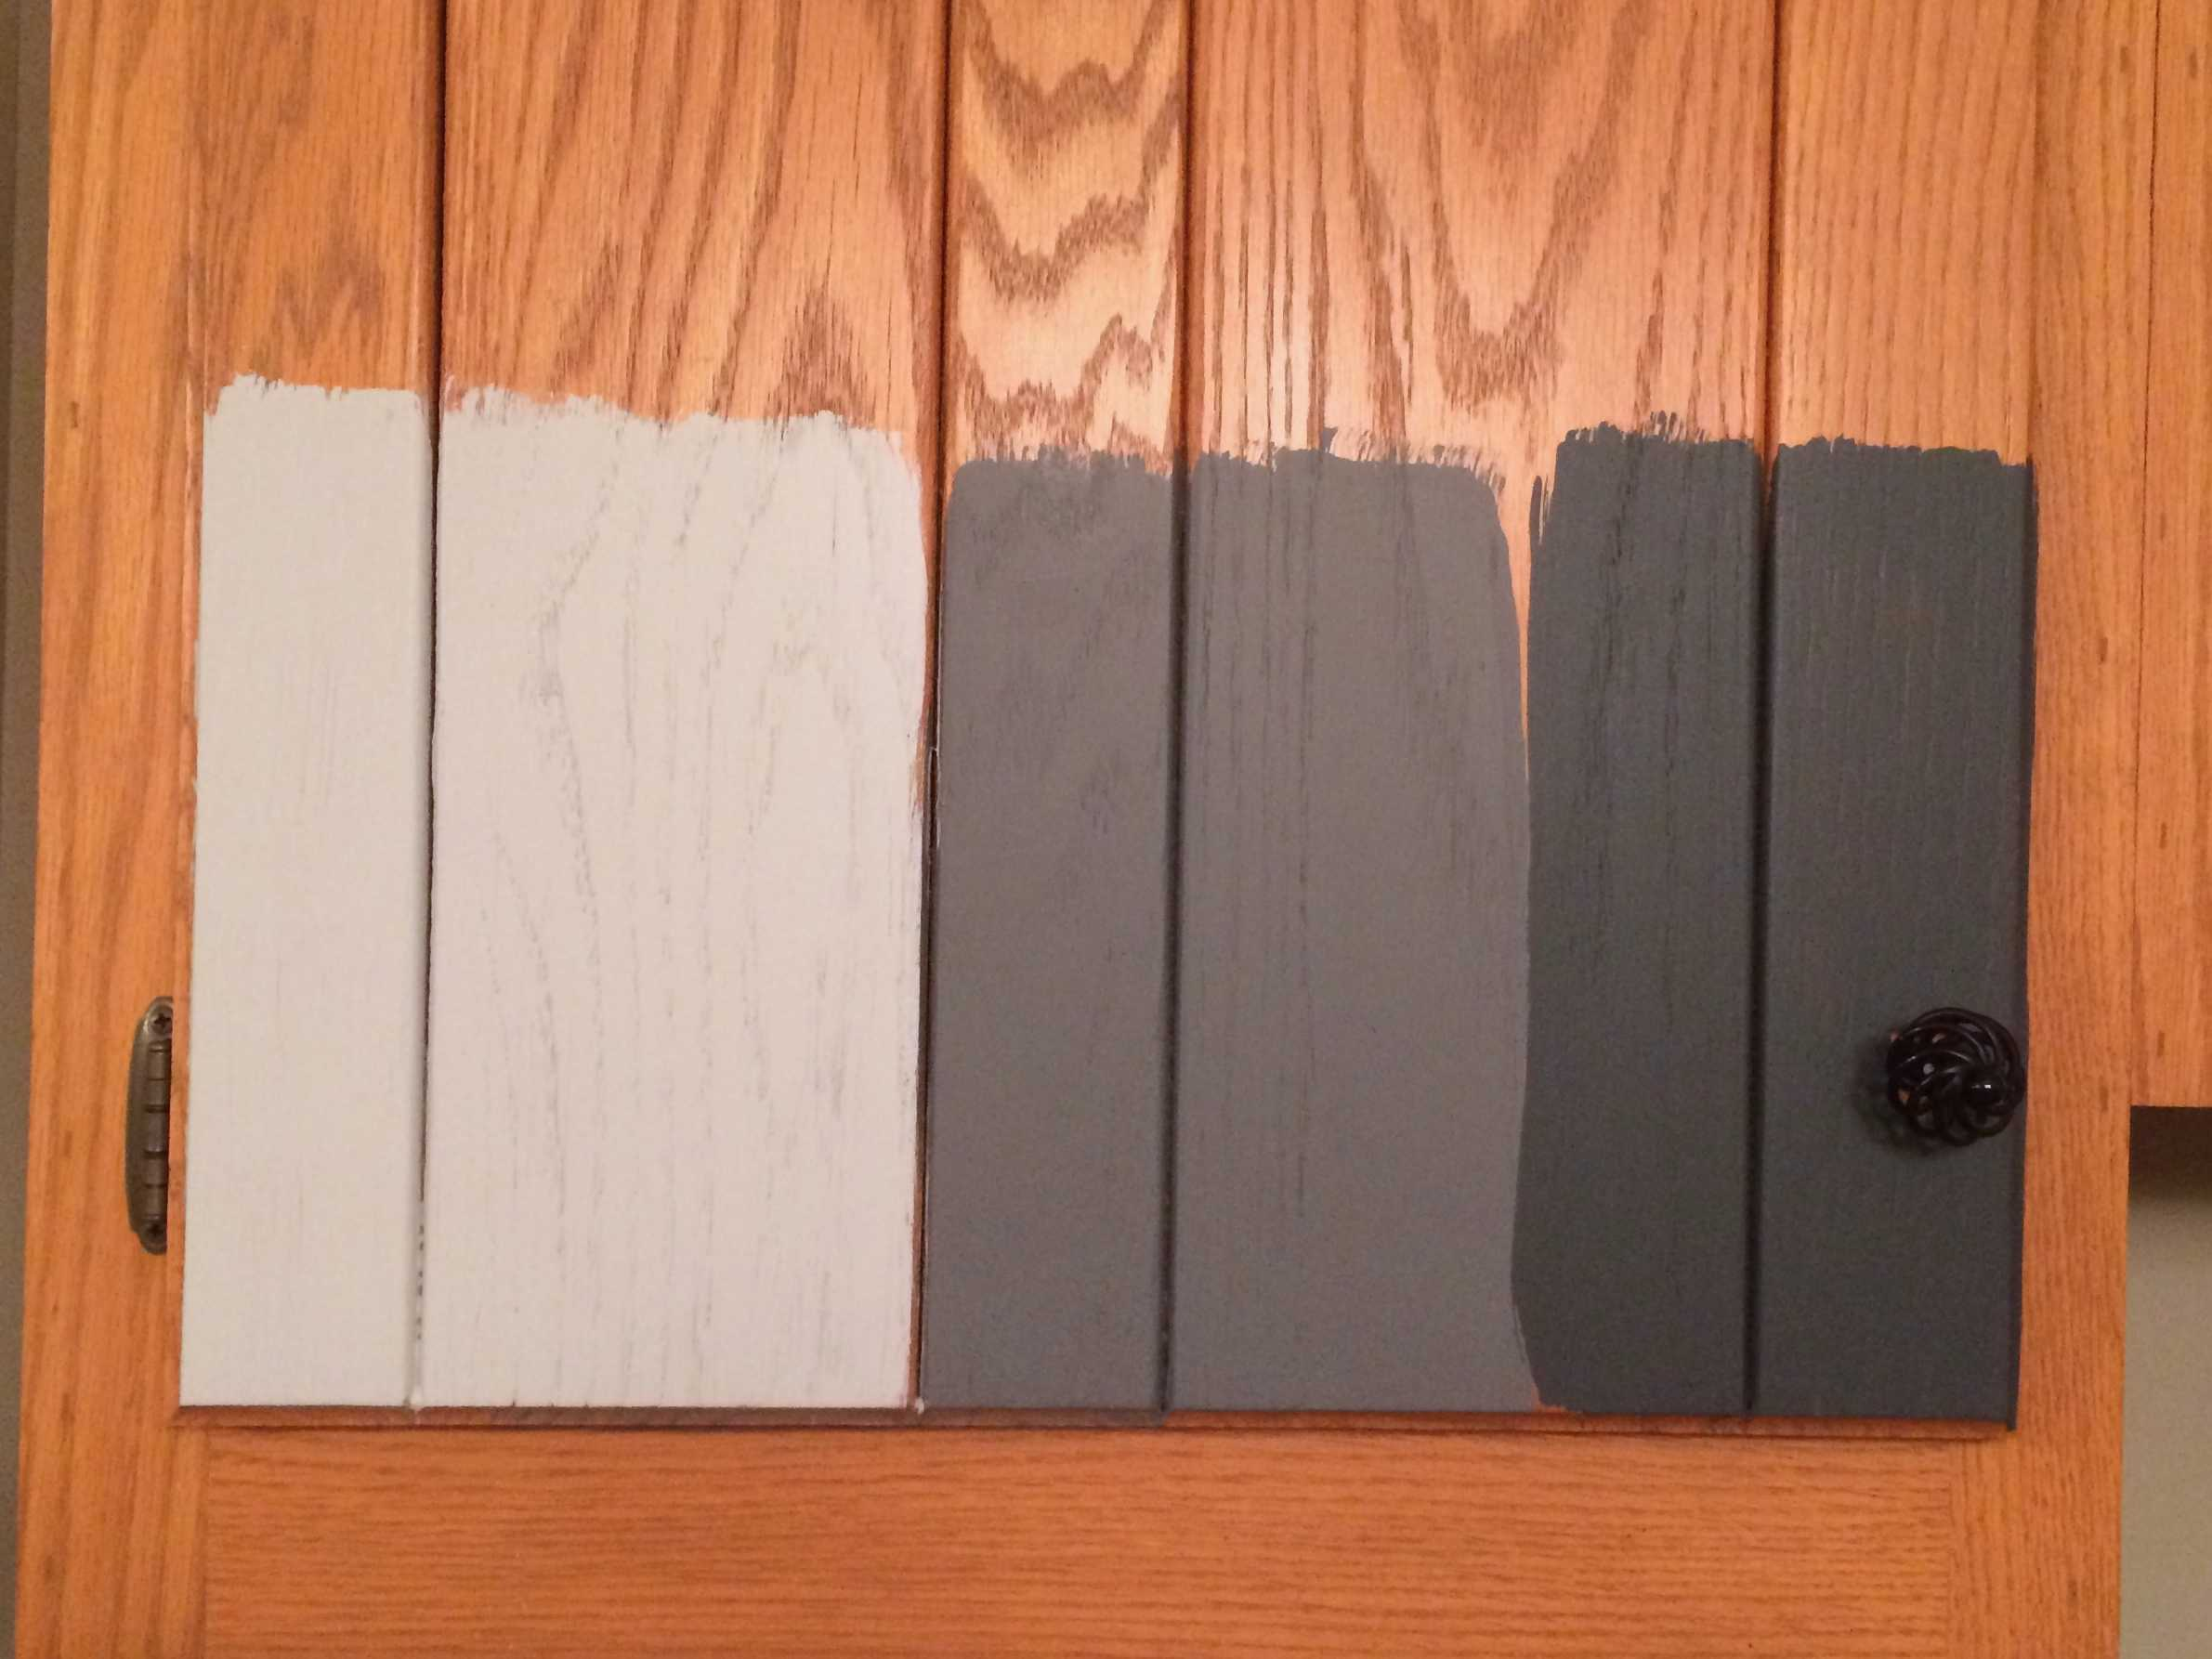 How to paint kitchen cabinets without sanding or priming Pictures of painted cabinets